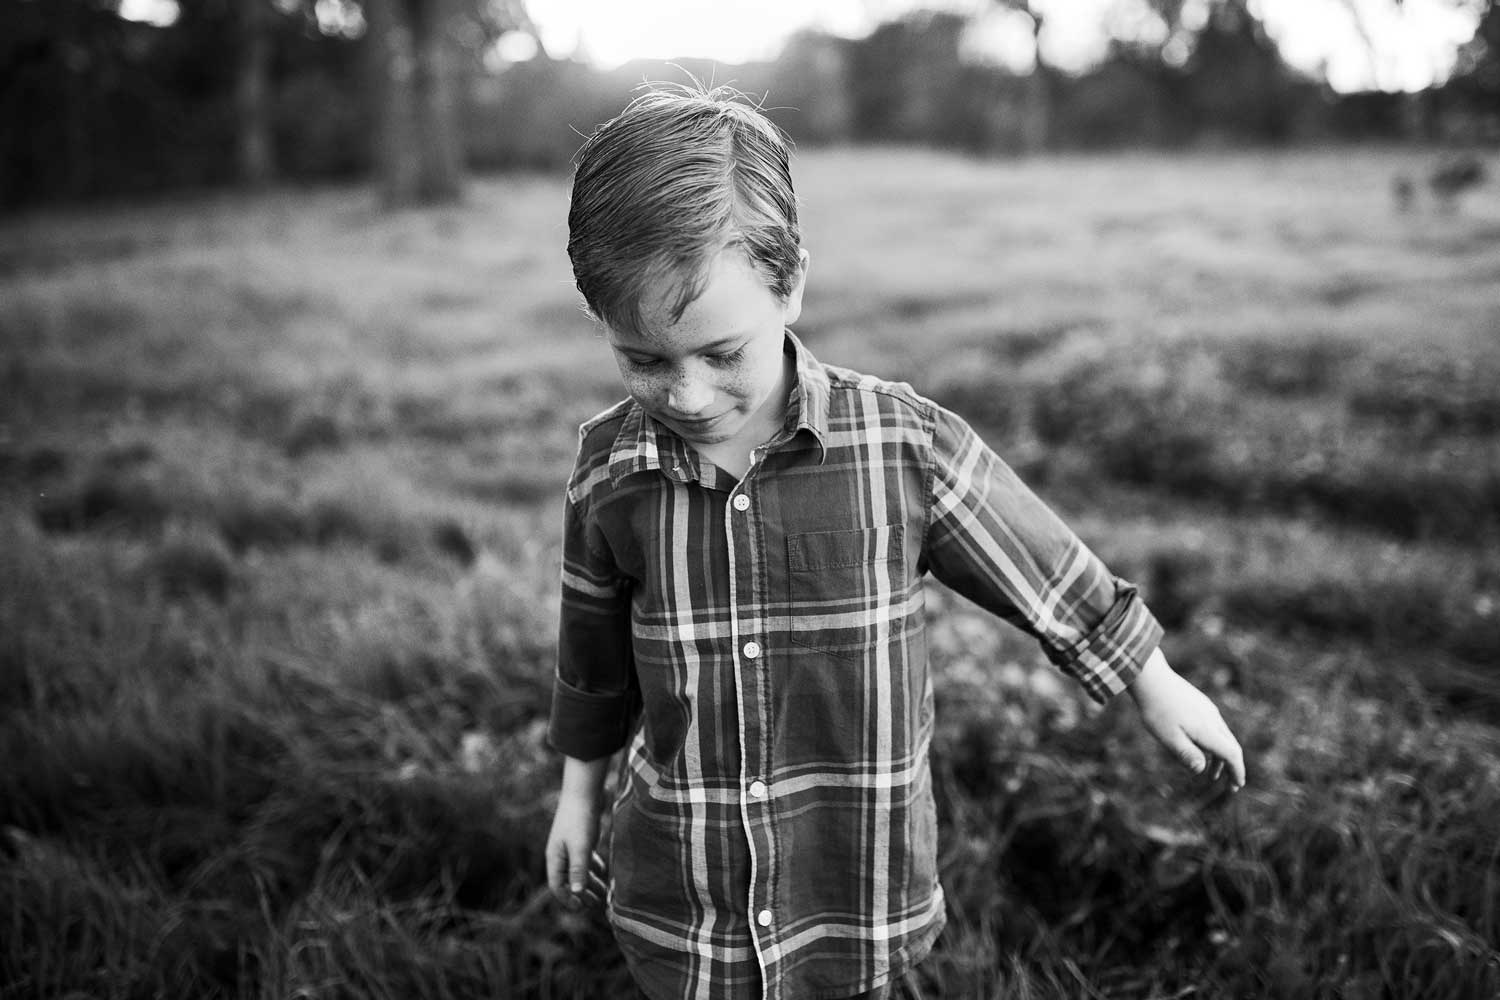 A young boy walks through a grassy field in Roseville, California during a photo session with Amy Wright Photography.